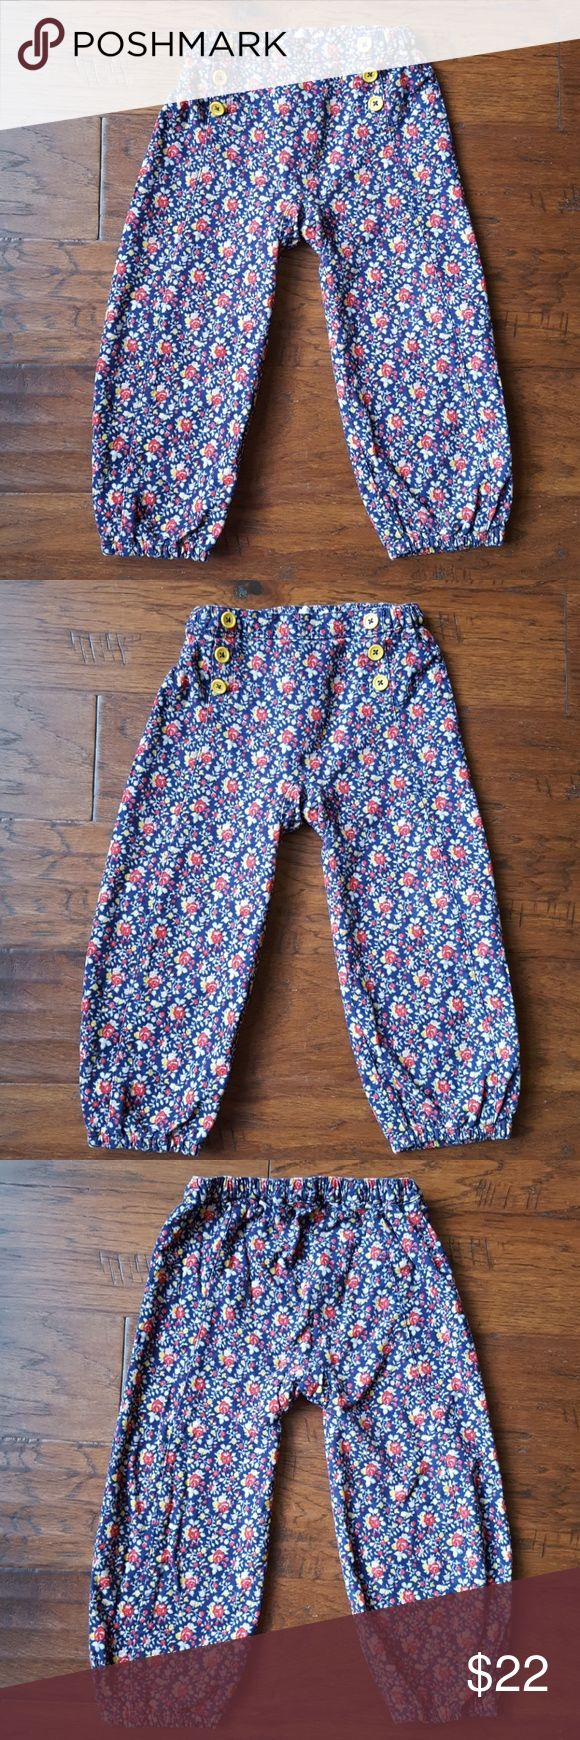 Worn Once! Mini Boden Pretty Cord Trousers 2-3Y Mini Boden Pretty Cord Trousers in Navy Antique Rose print. Mustard yellow buttons adorn the front of these sweet corduroy pants. Mustard yellow jersey lining to keep your little one extra warm on cold winter days. Worn once. Mini Boden Bottoms